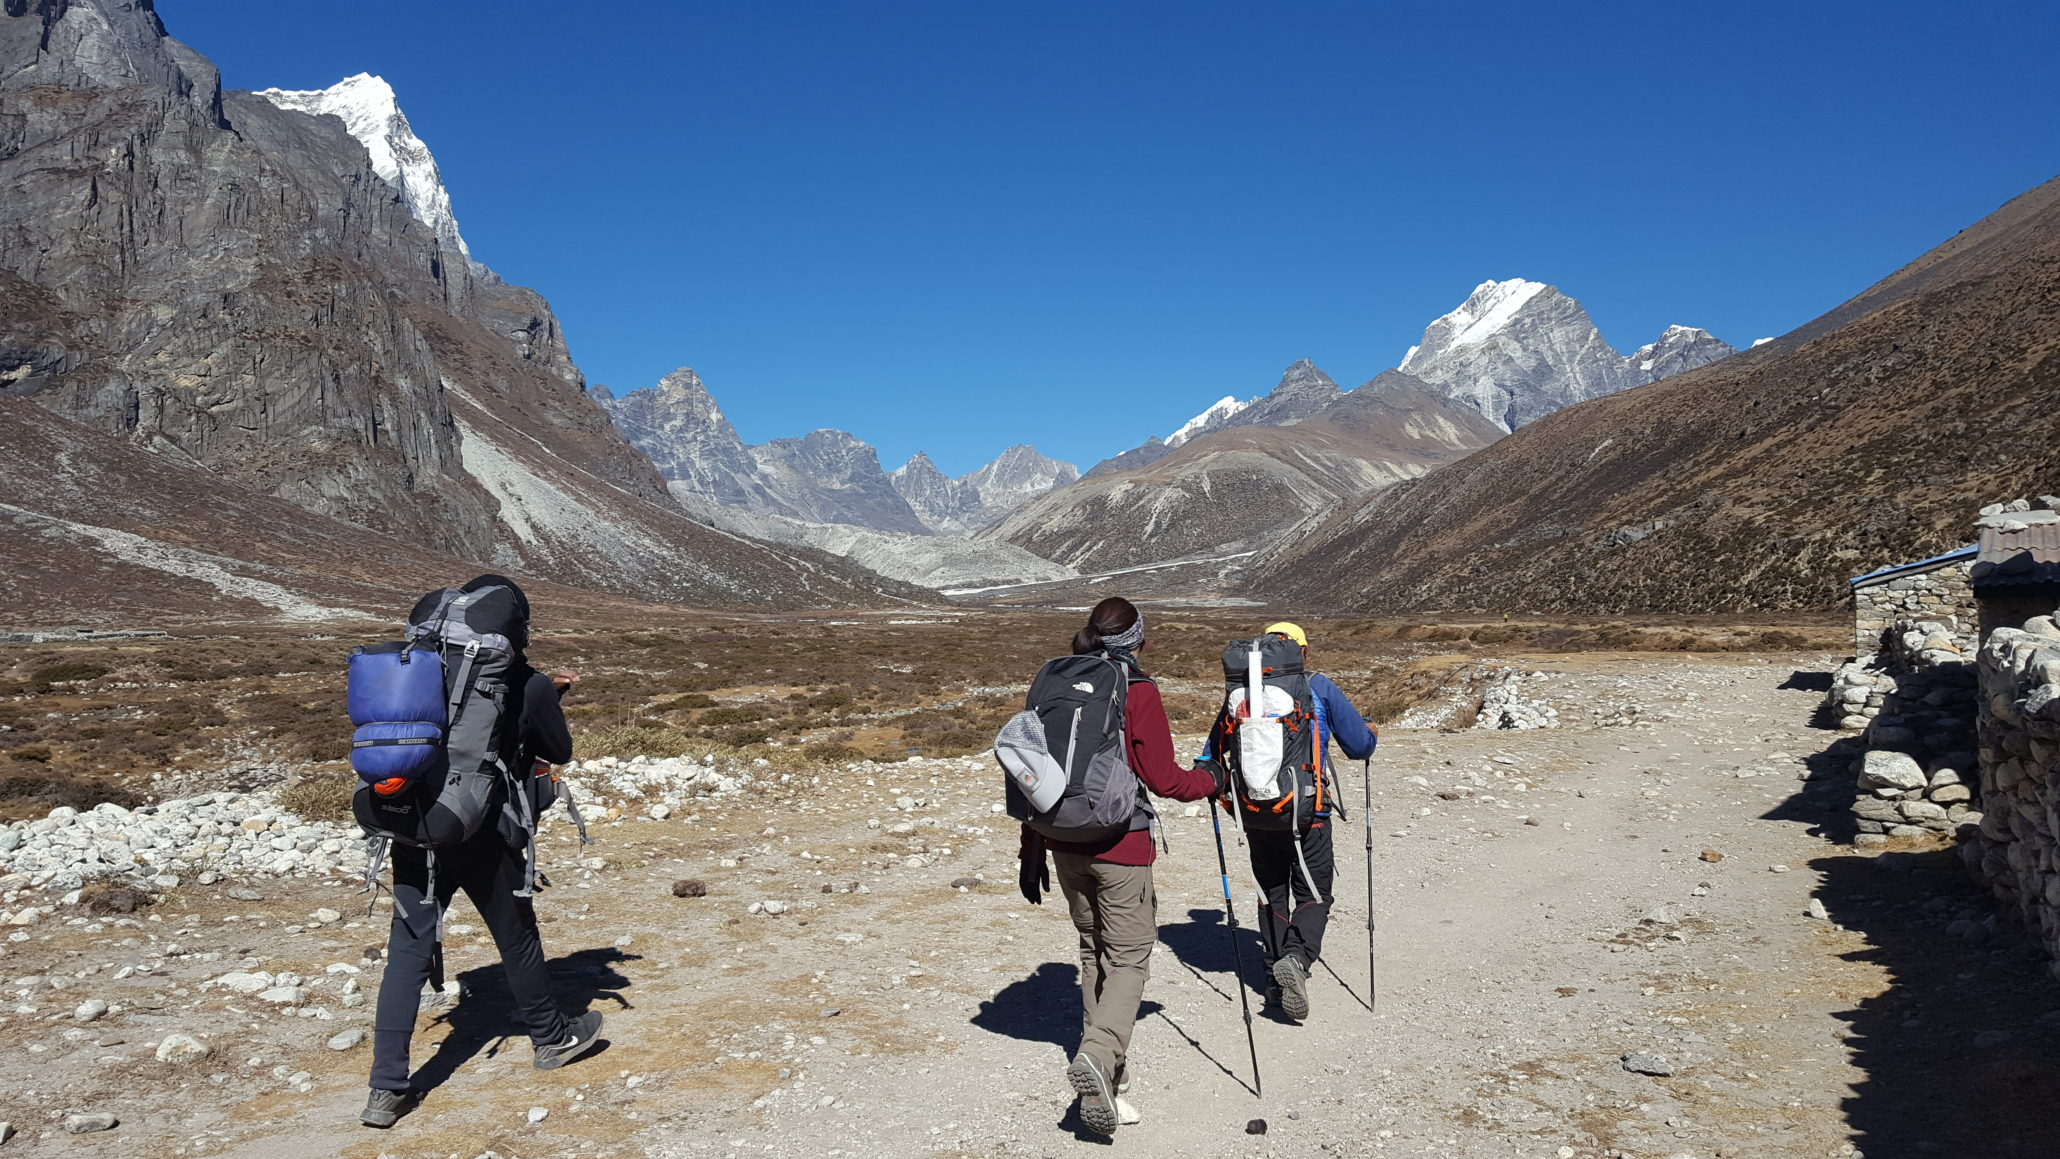 3 himalayan trekkers with their bag and stick